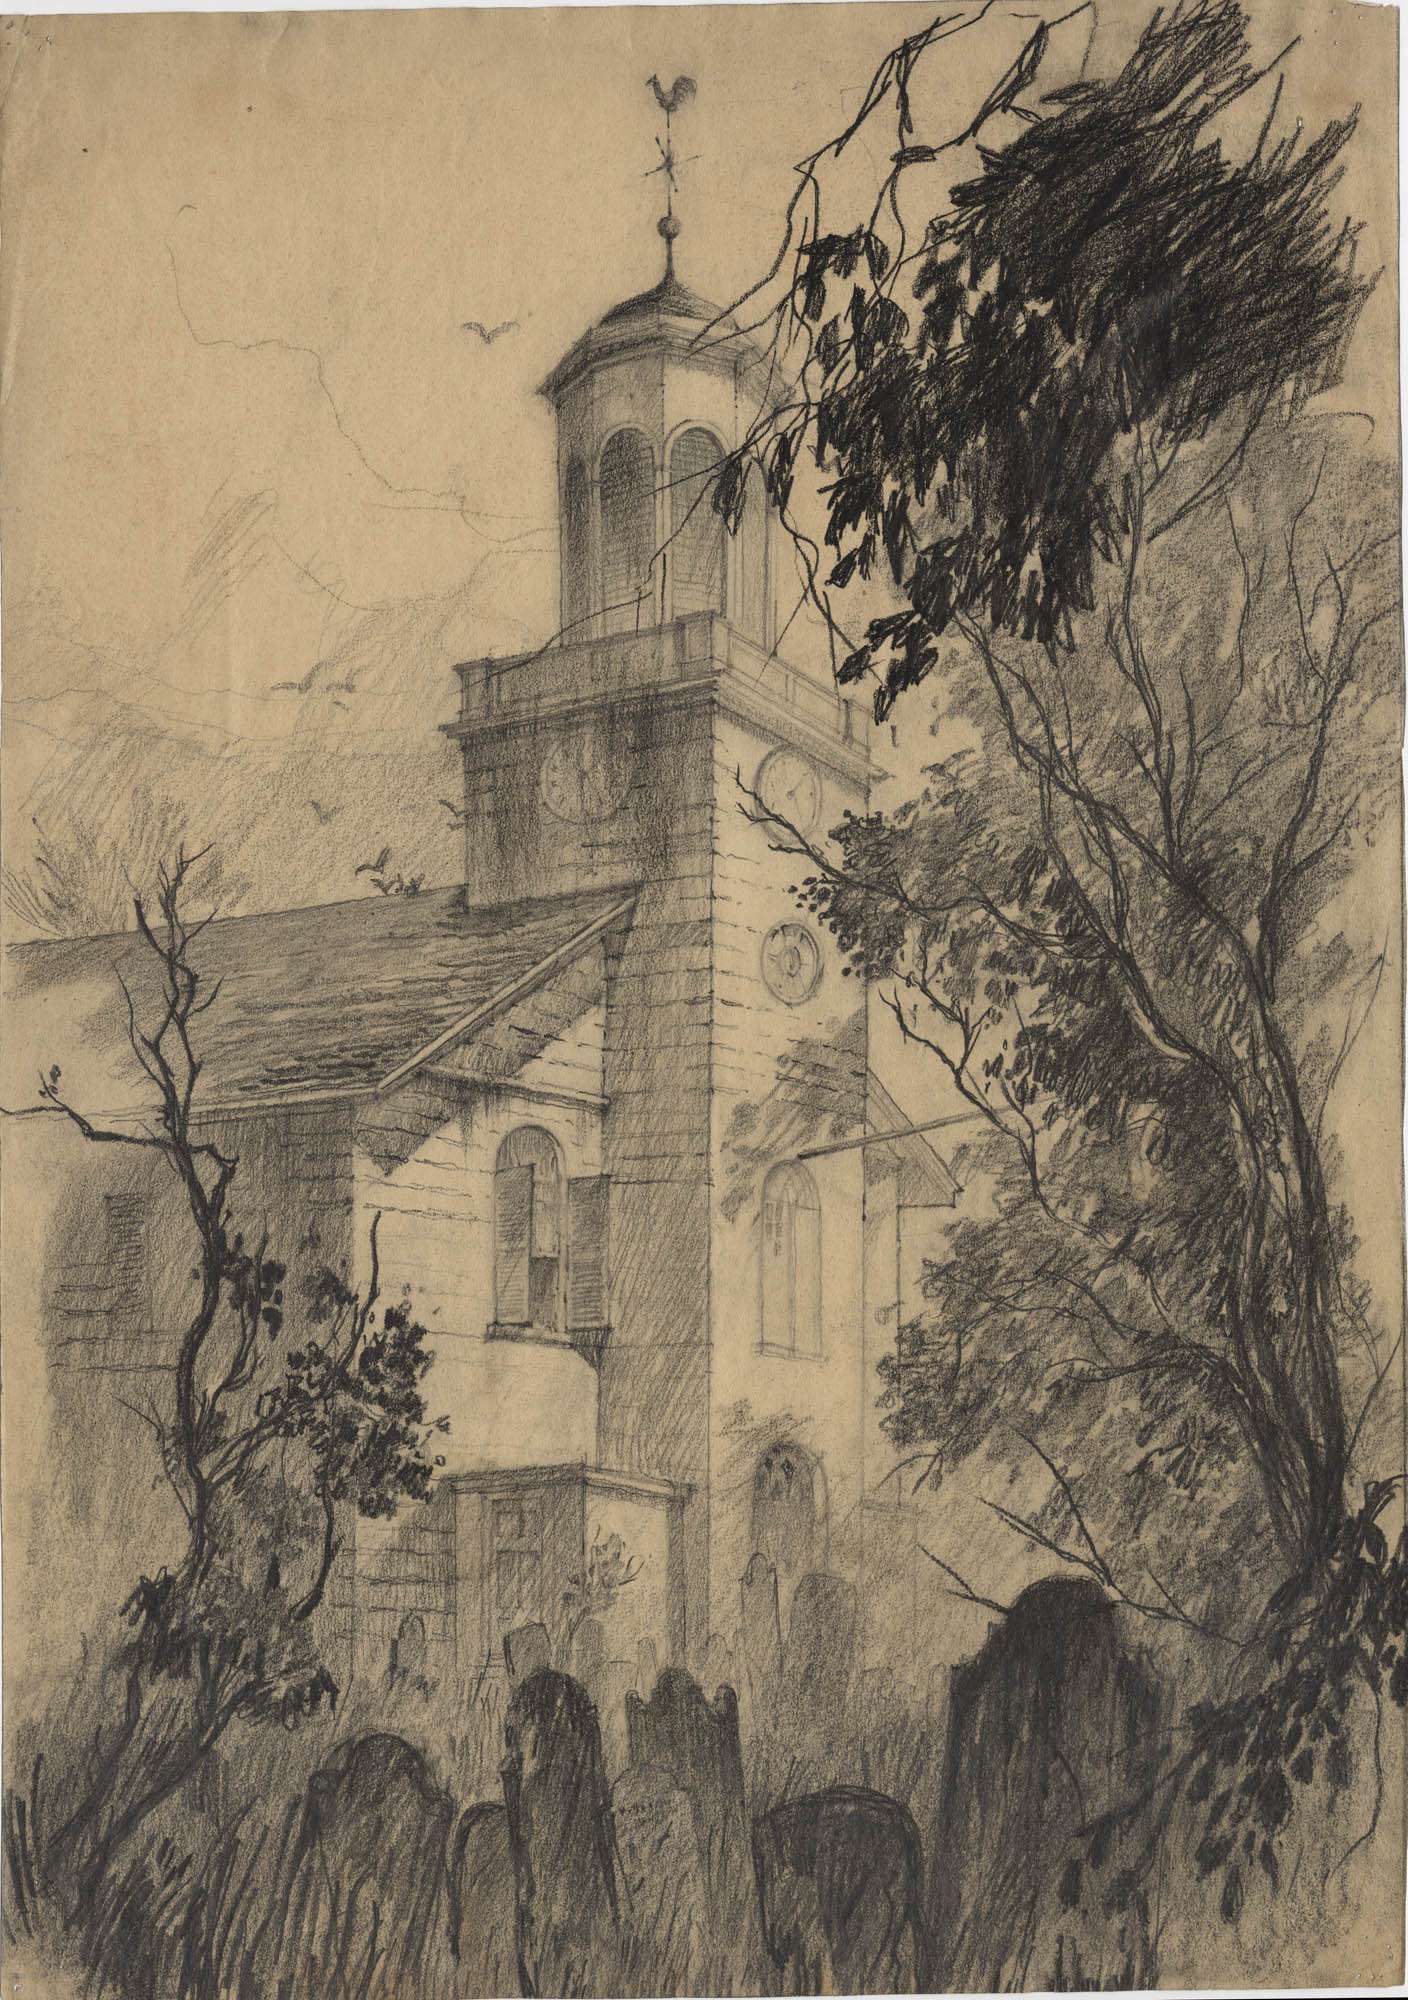 Drawing of an exterior view of St. Helena's Church in Beaufort, South Carolina. Drawing also depicts the trees and cemetery surrounding the building.